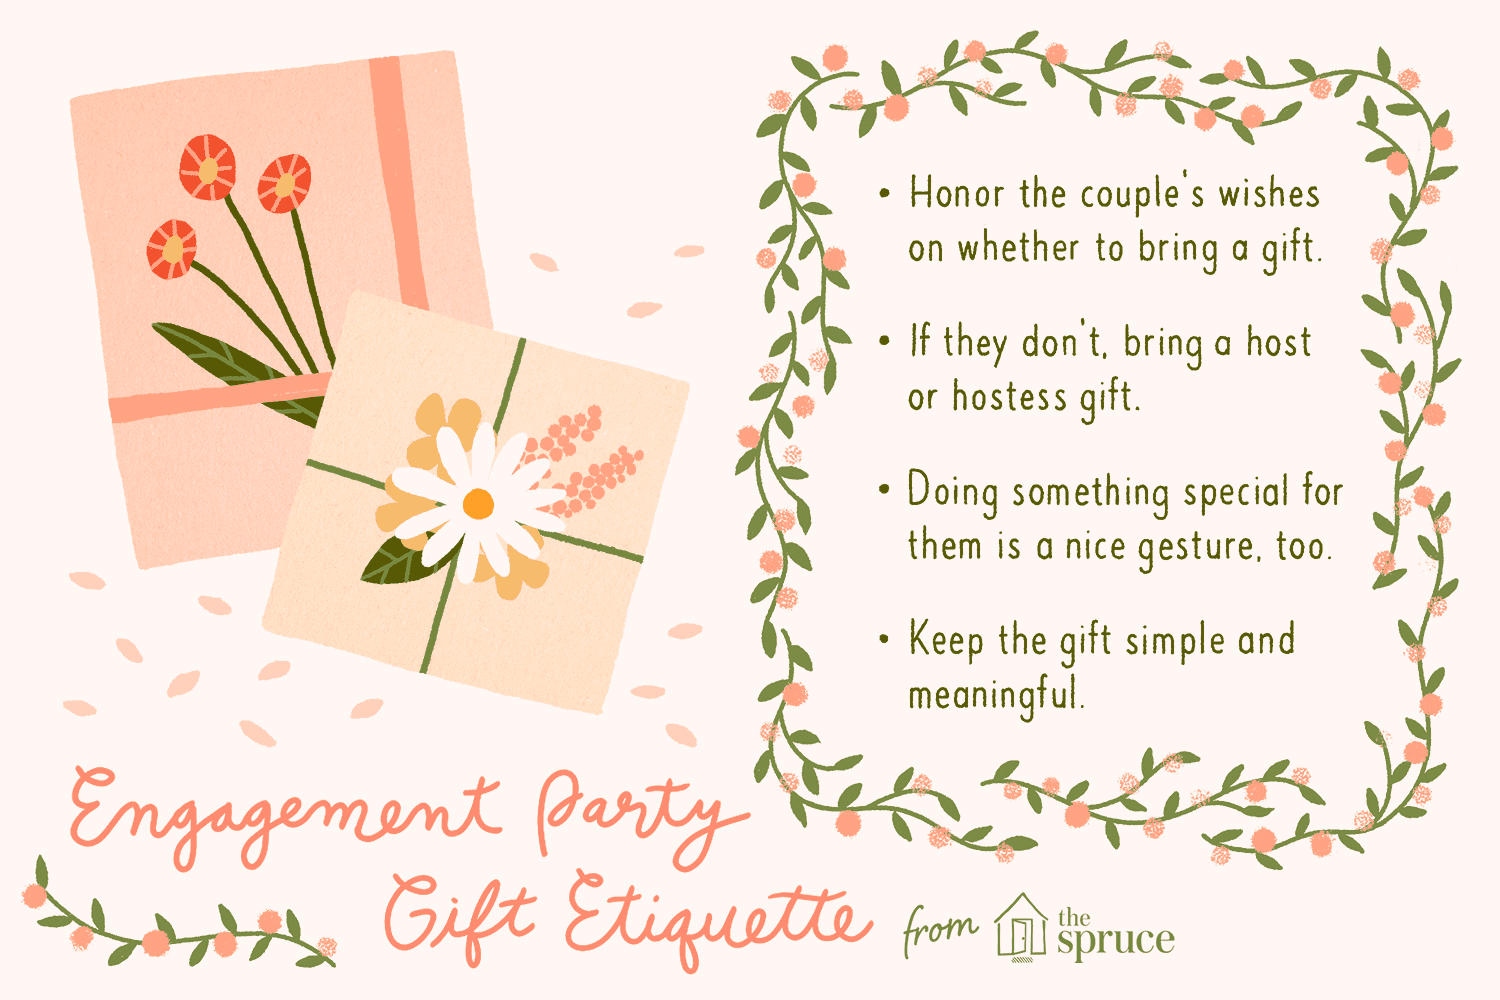 Should You Bring A Gift To An Engagement Party